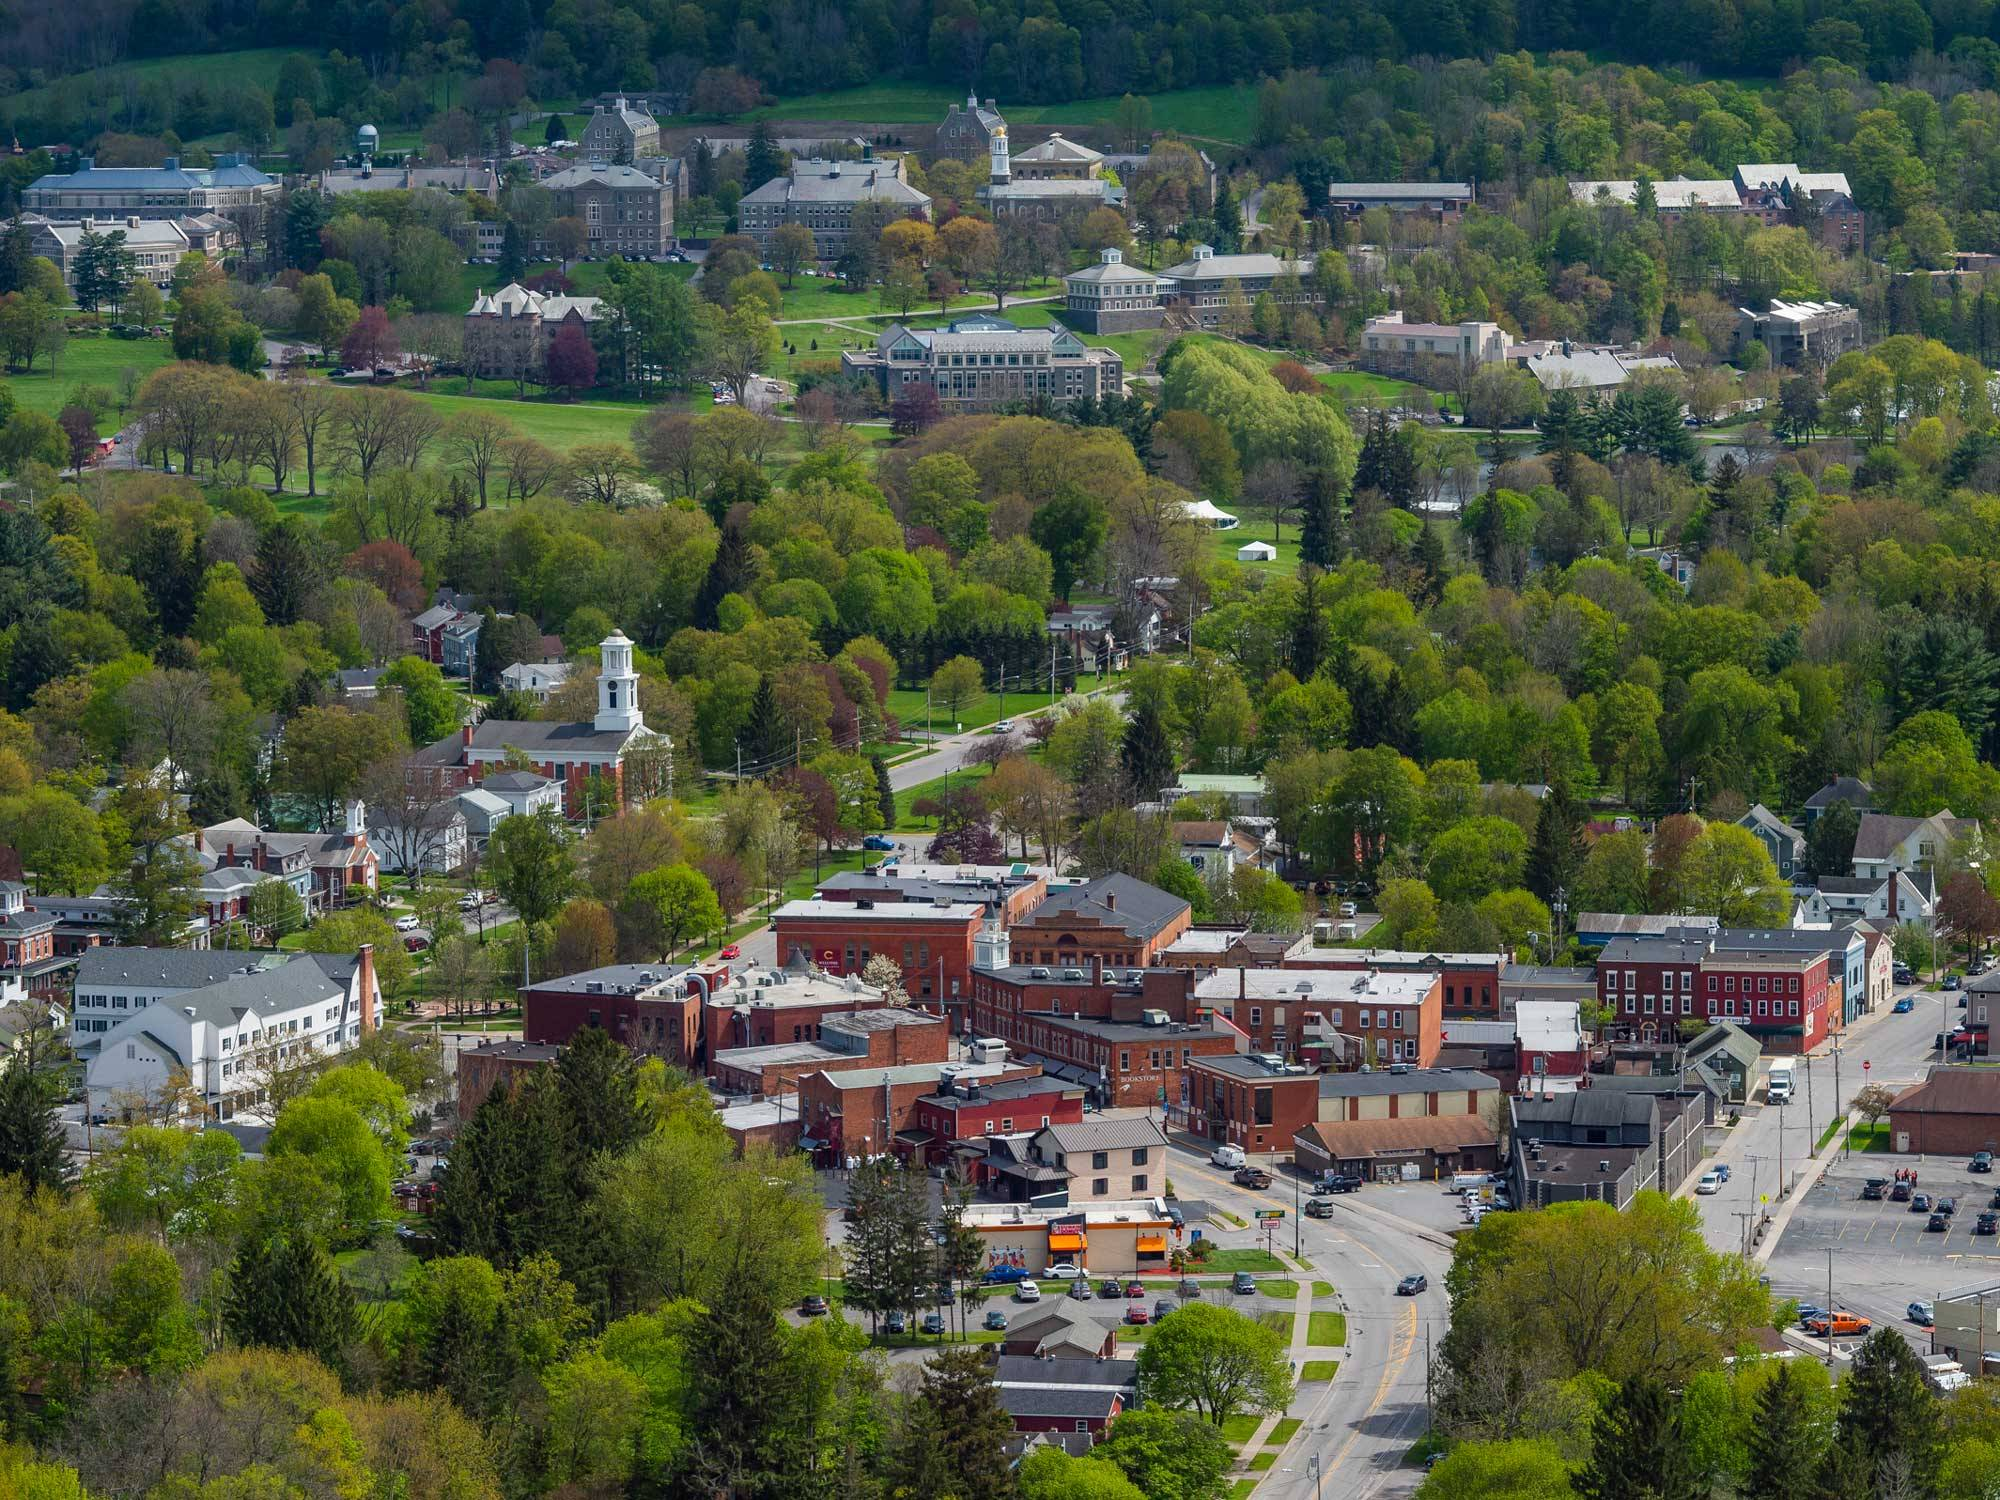 Aerial view of the Village of Hamilton and Colgate